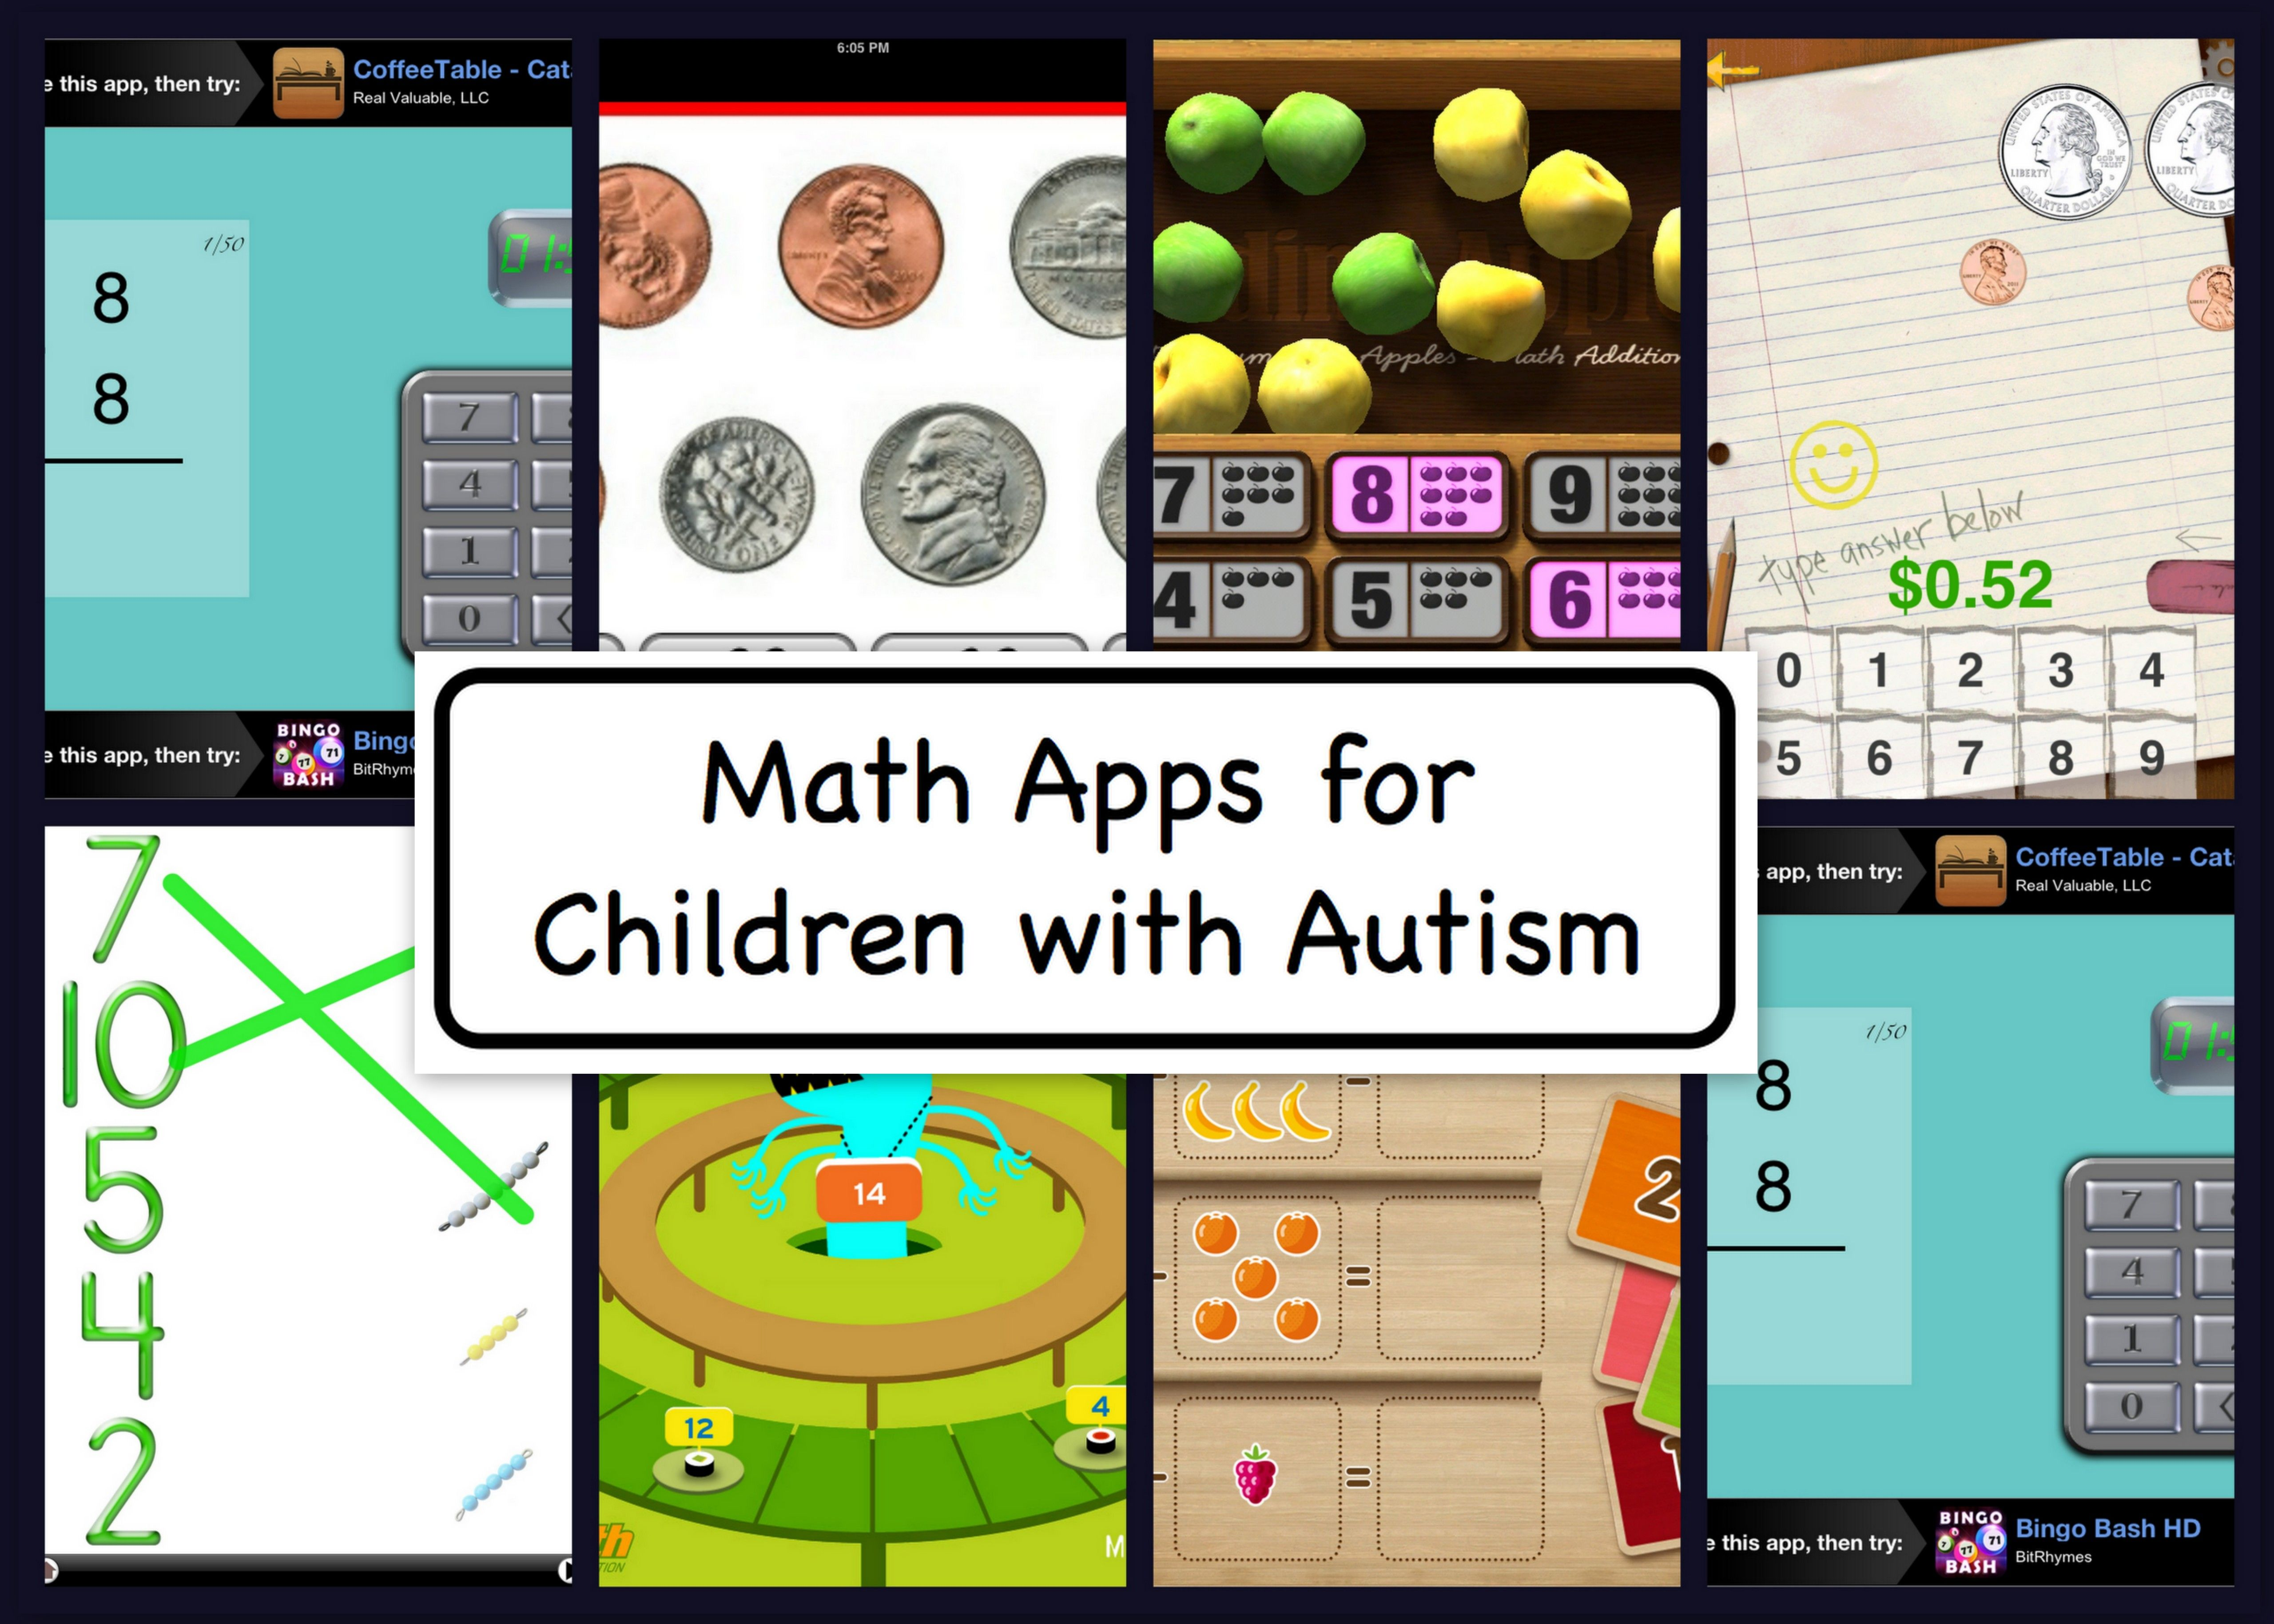 Mighty Math Apps